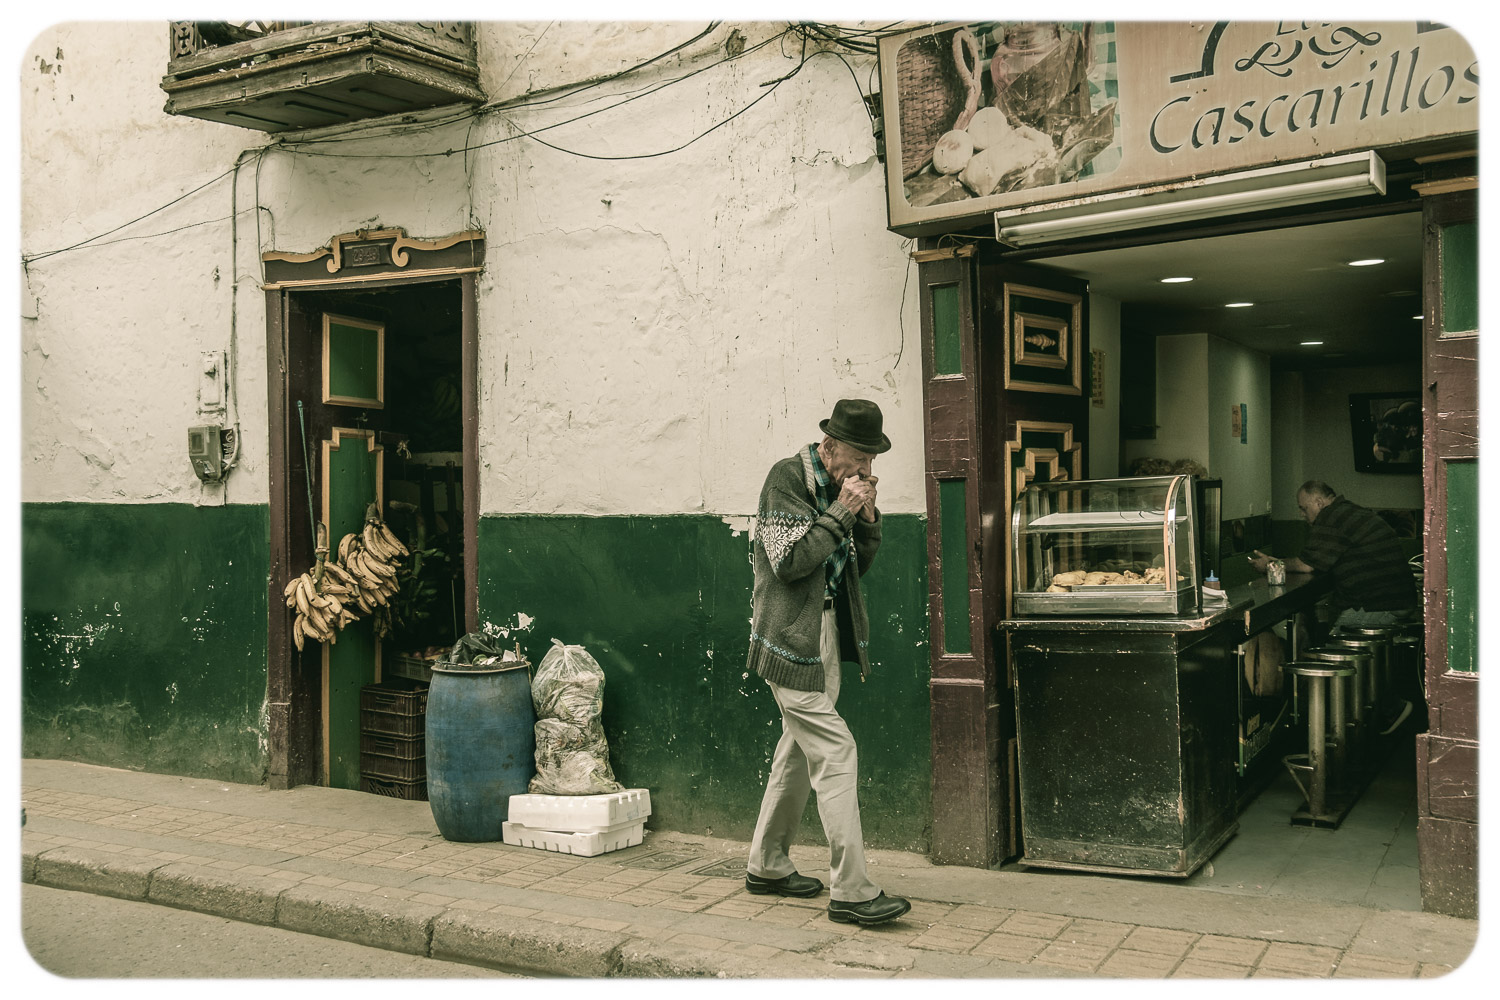 street photography challenge - shot on a street in Colombia